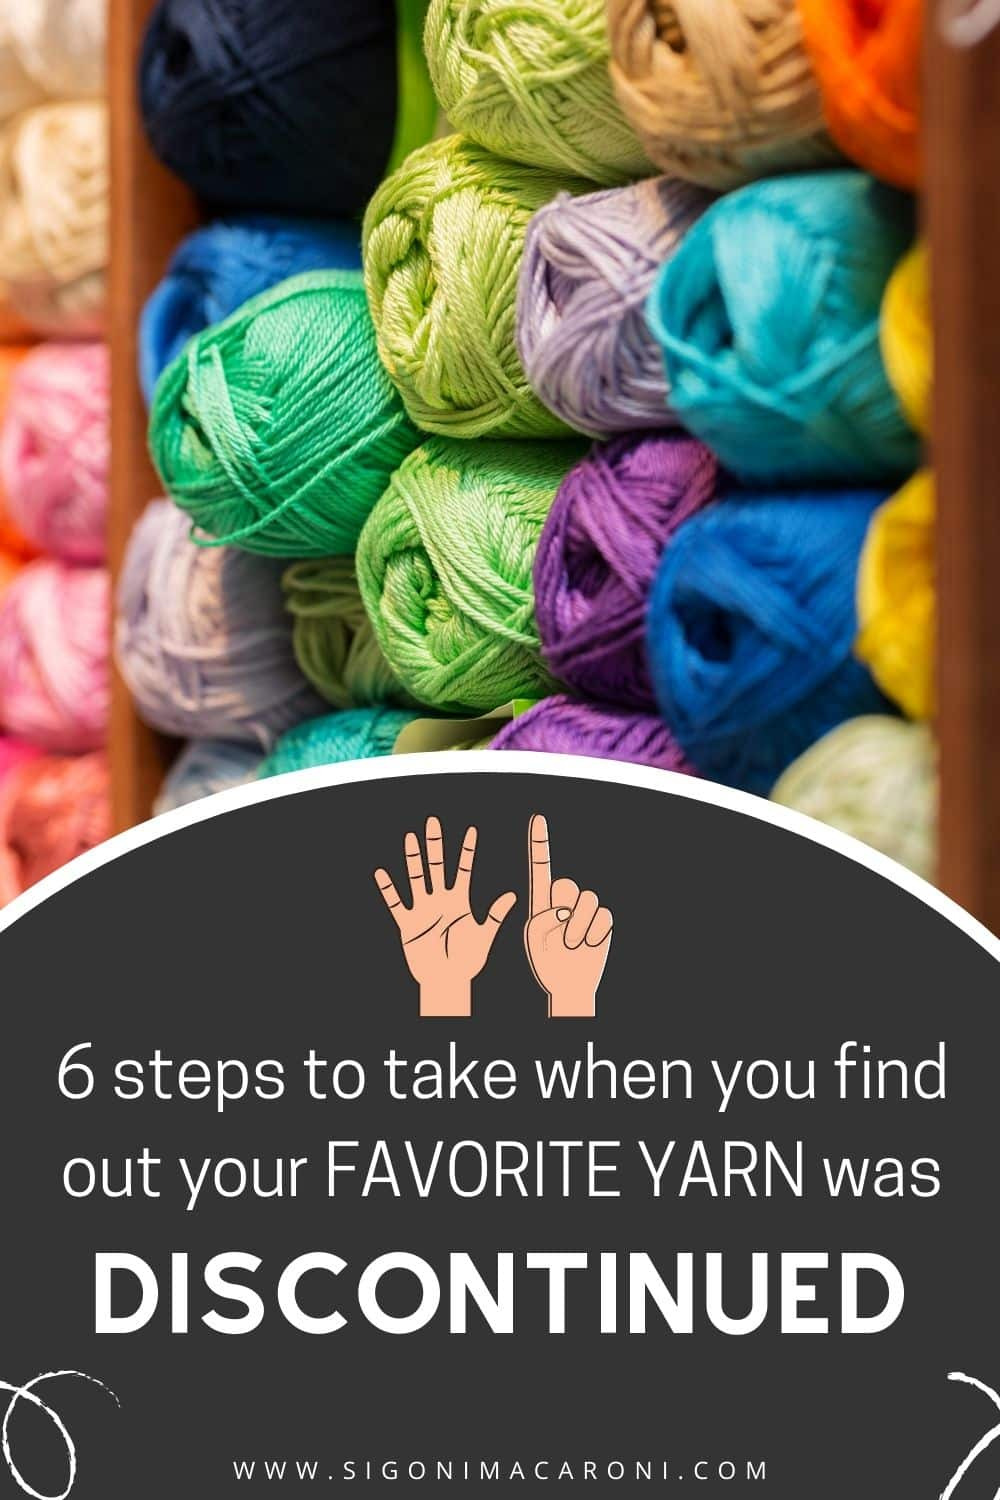 MY FAVORITE YARN WAS DISCONTINUED! Now what? | Where To Find Discontinued Yarn via @sigonimacaronii